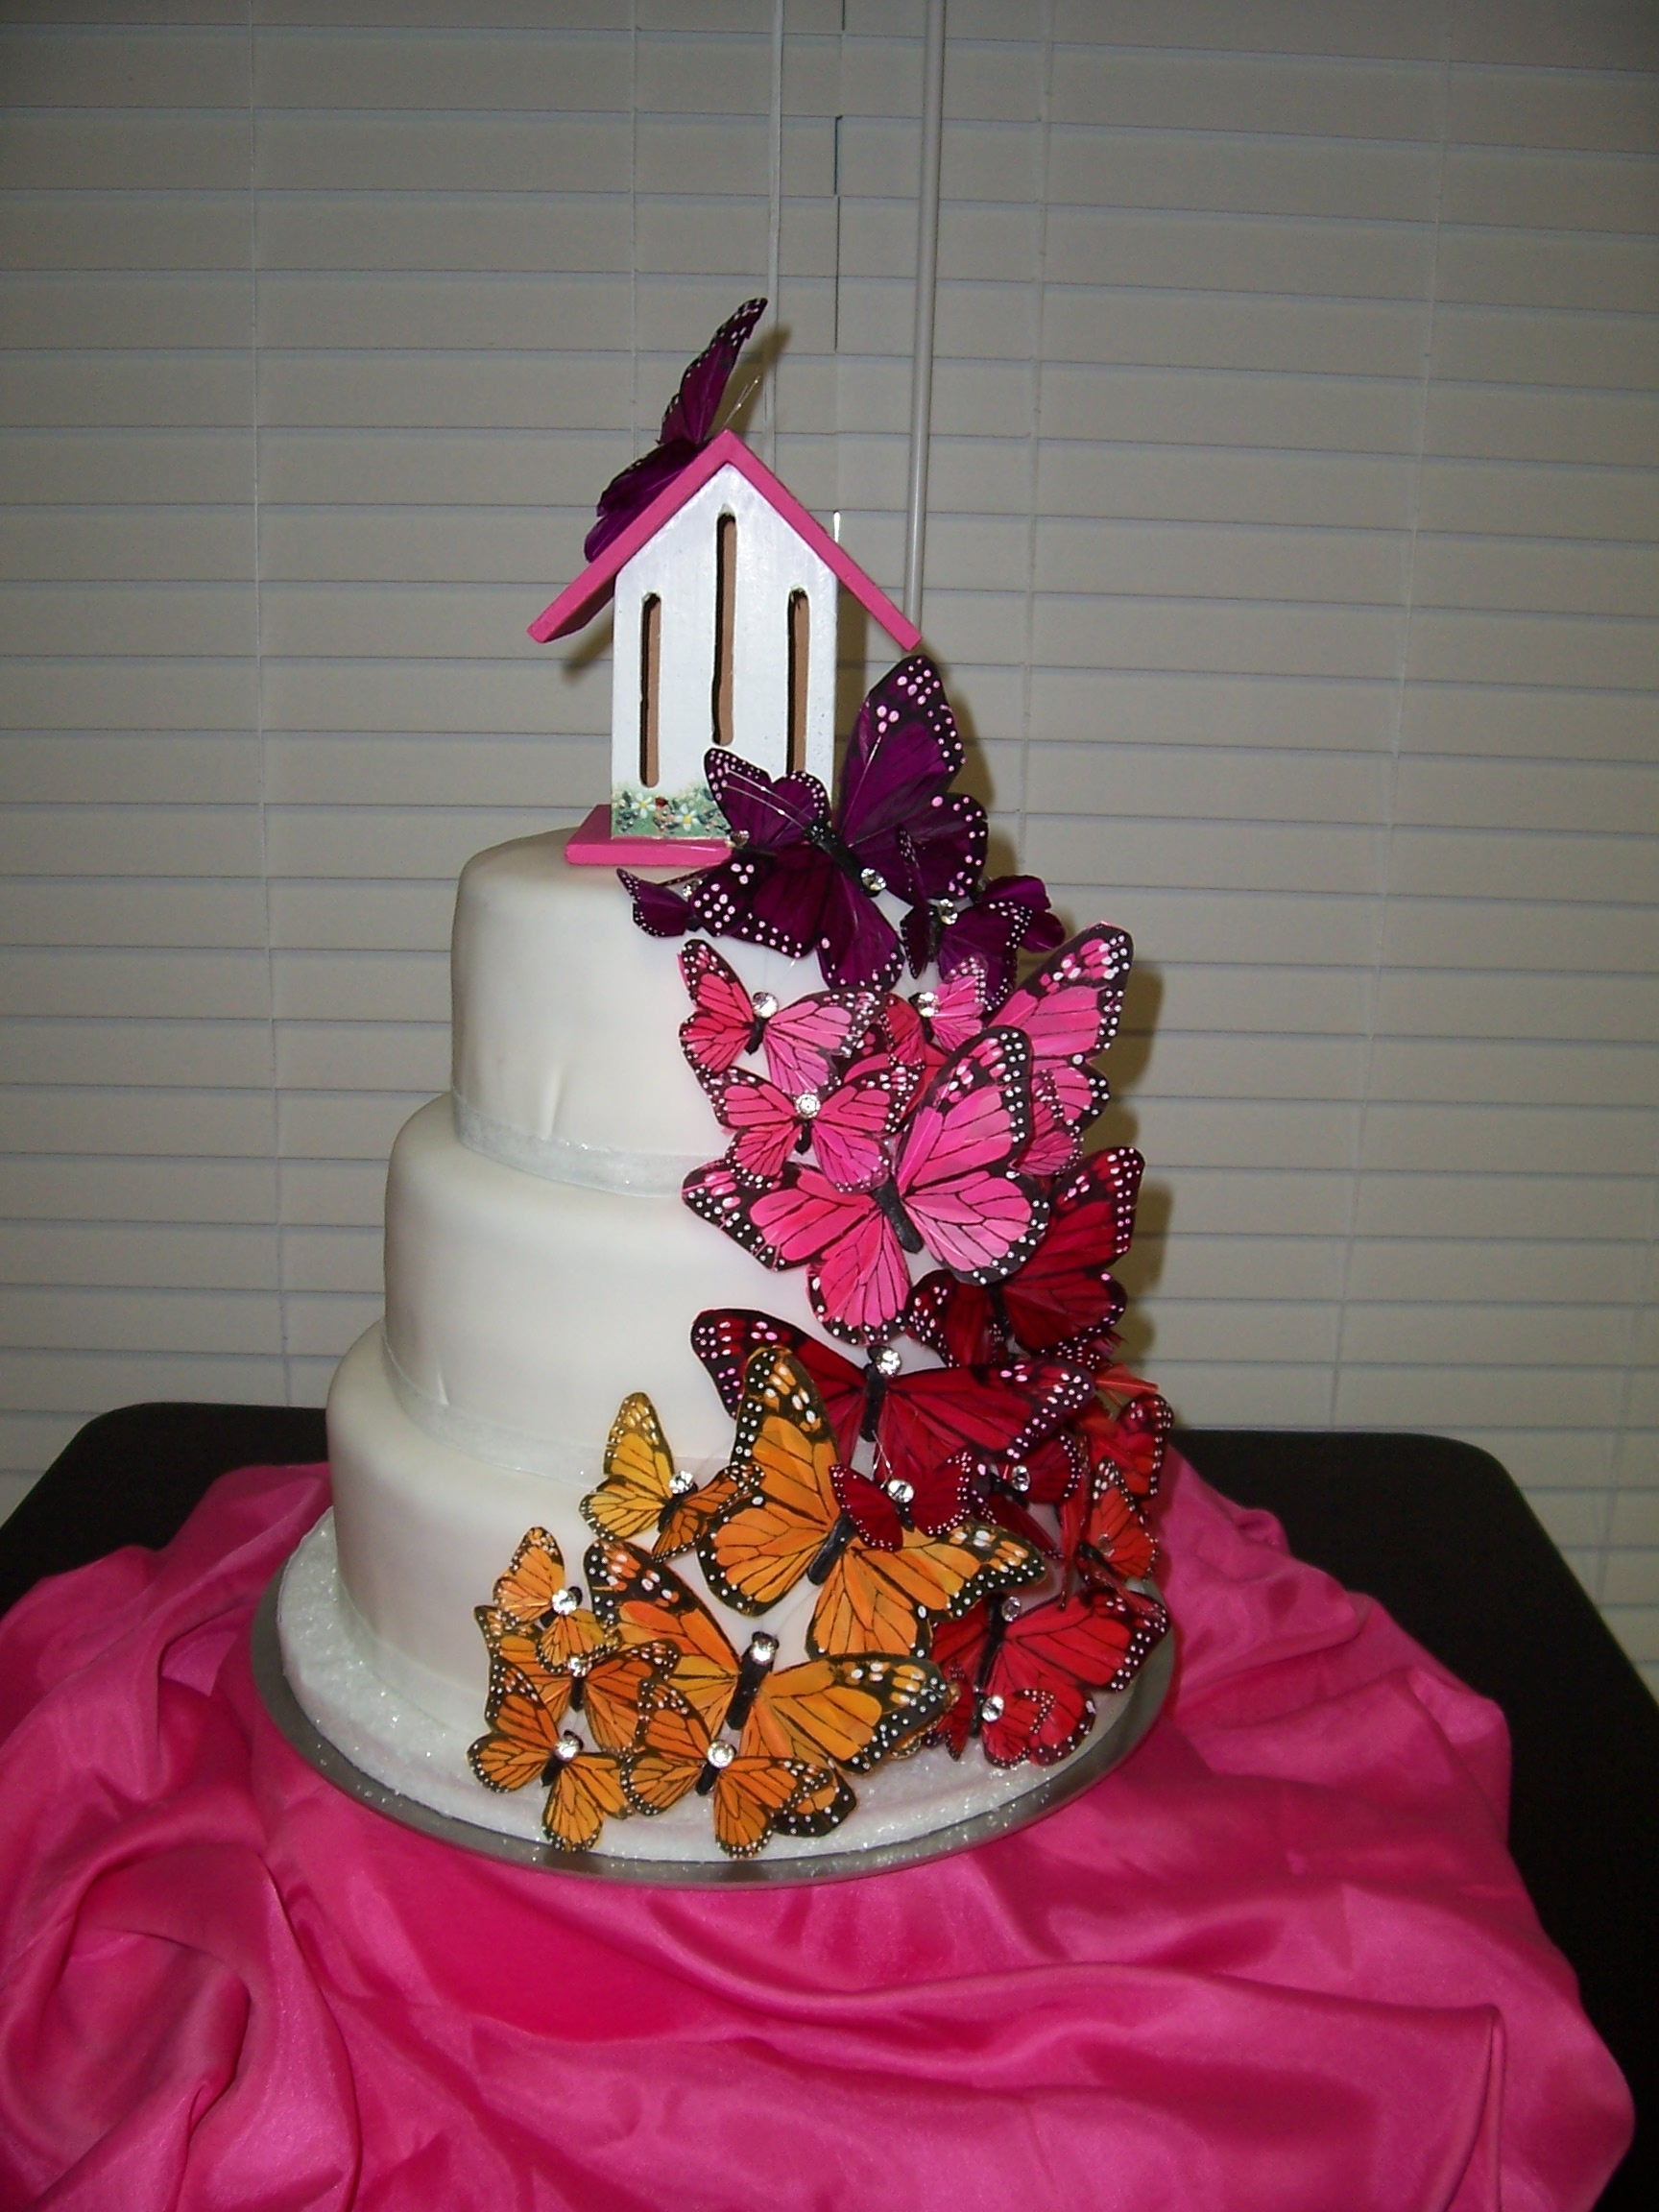 My niece wanted butterflies for her 7th birthday cake. She really loved the butterfly house for the topper.